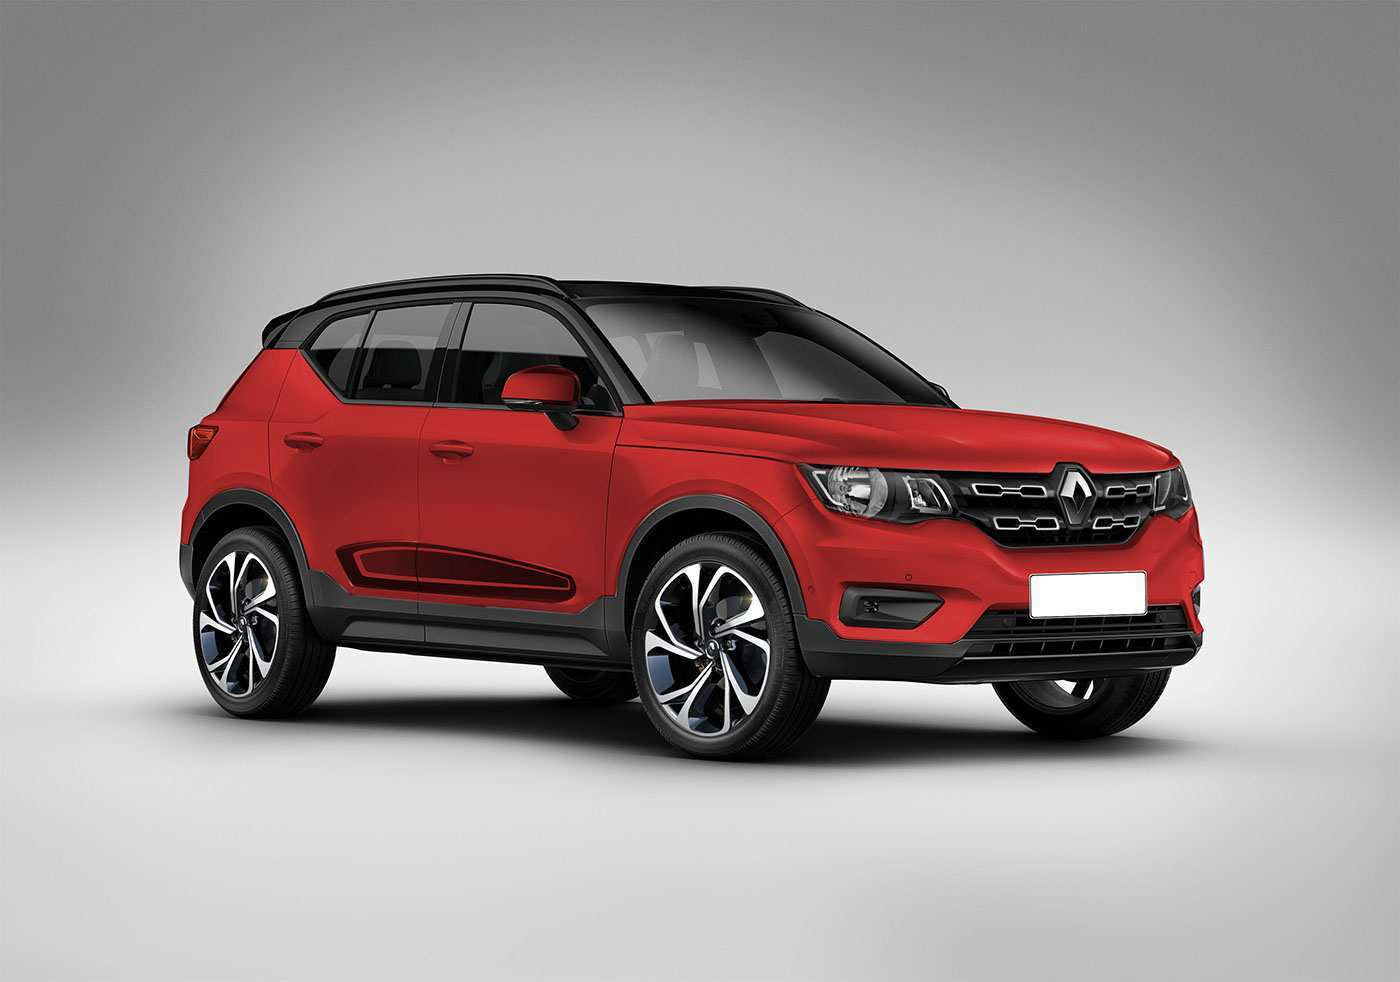 99 Great 2020 Renault Kwid Price and Review for 2020 Renault Kwid